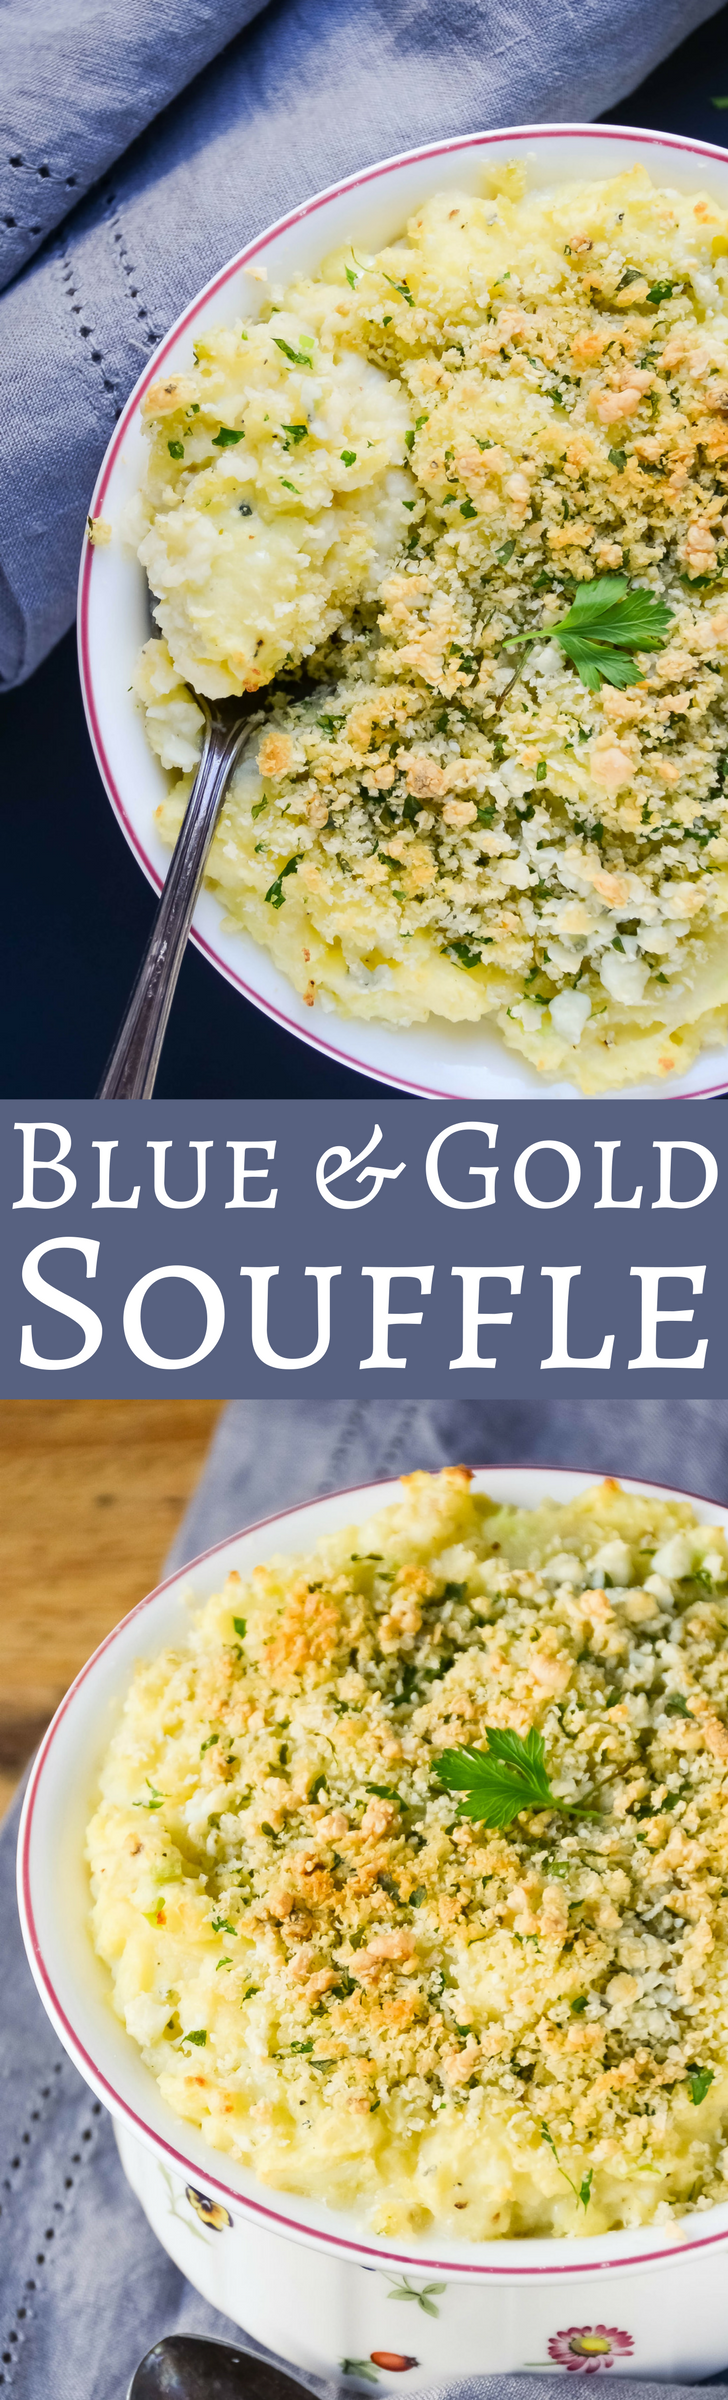 Your new favorite casserole, with fluffy Yukon Gold Potatoes and plenty of Blue Cheese.  Yum!  via @GarlicandZest